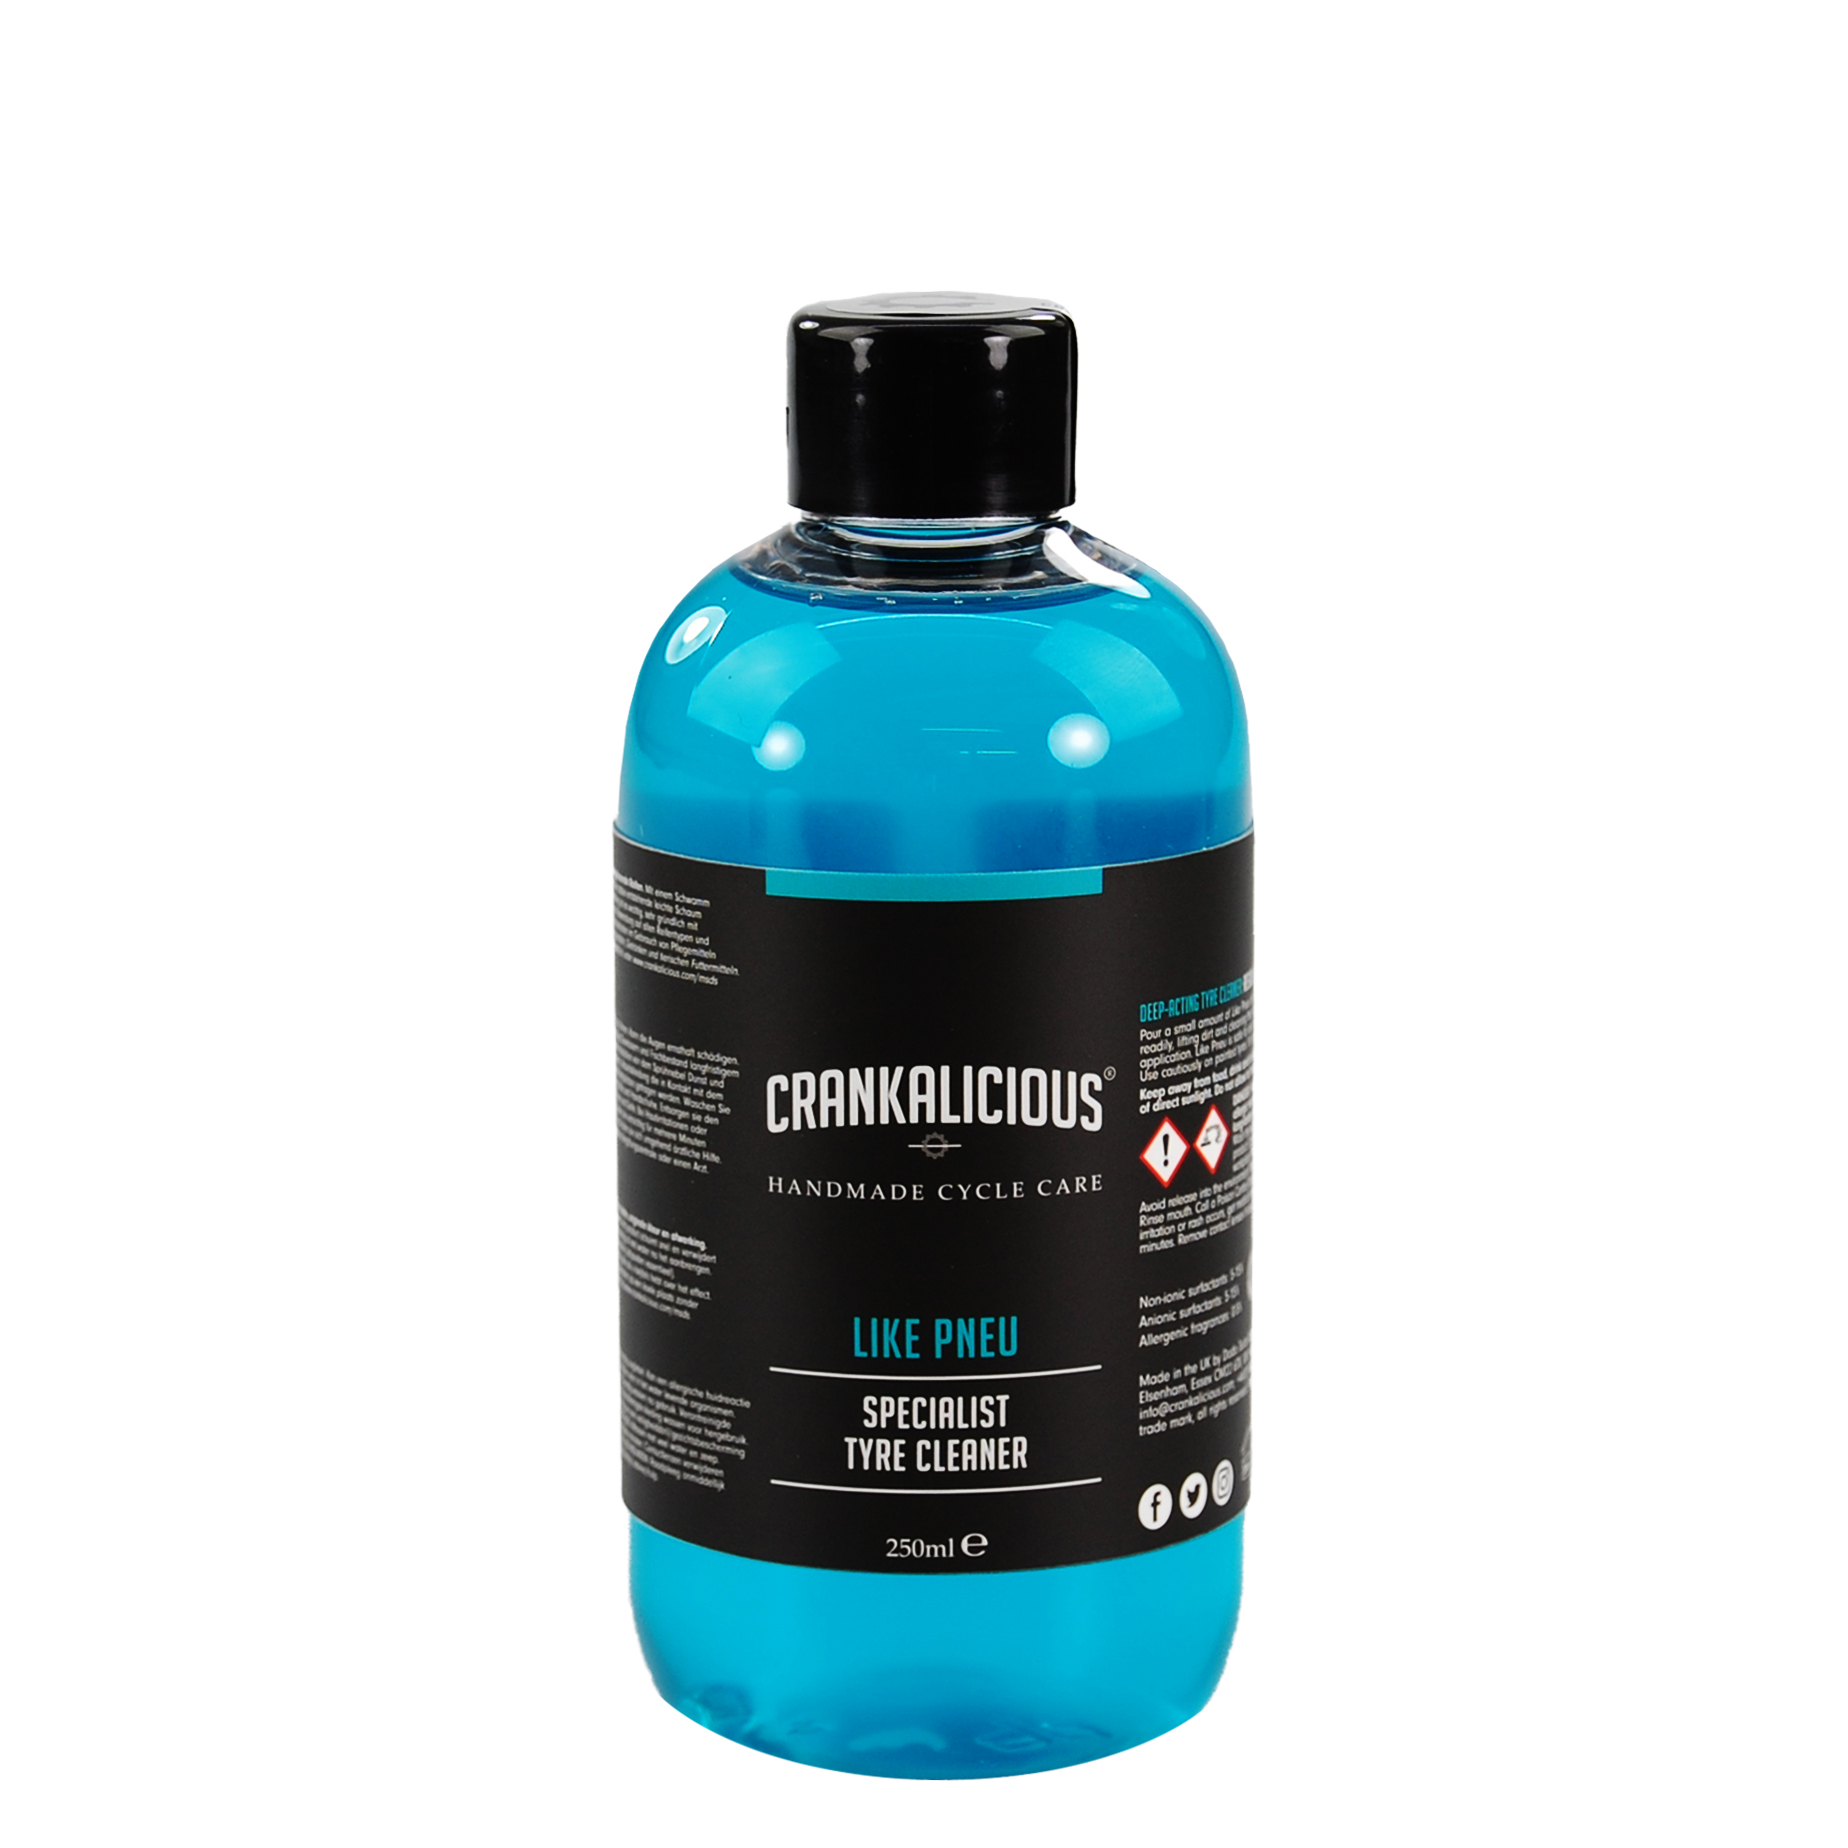 Crankalicious Like Pneu 250ml Tyre Cleaner One Size | Tyres